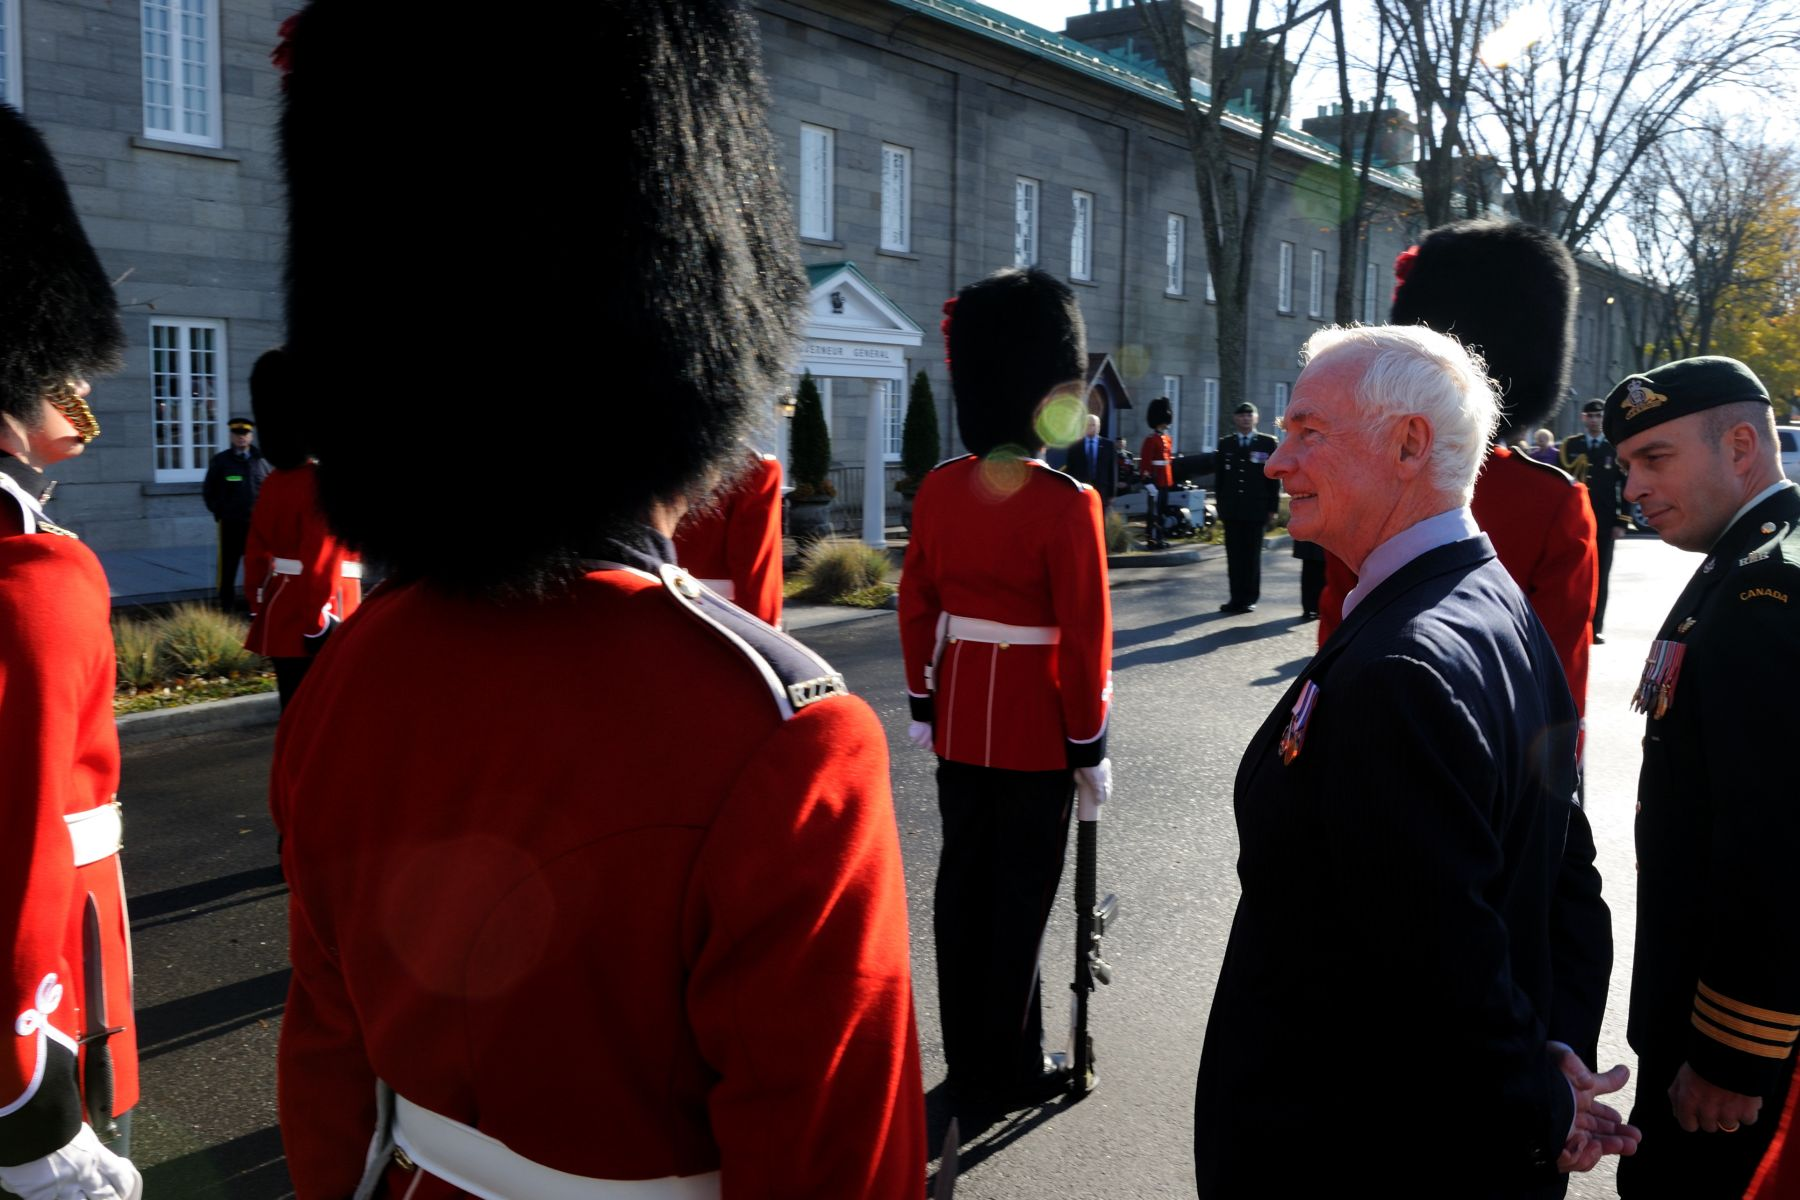 As commander-in-chief of Canada, the Governor General inspected a quarter guard of the Royal 22e Régiment upon his arrival at the Citadelle.